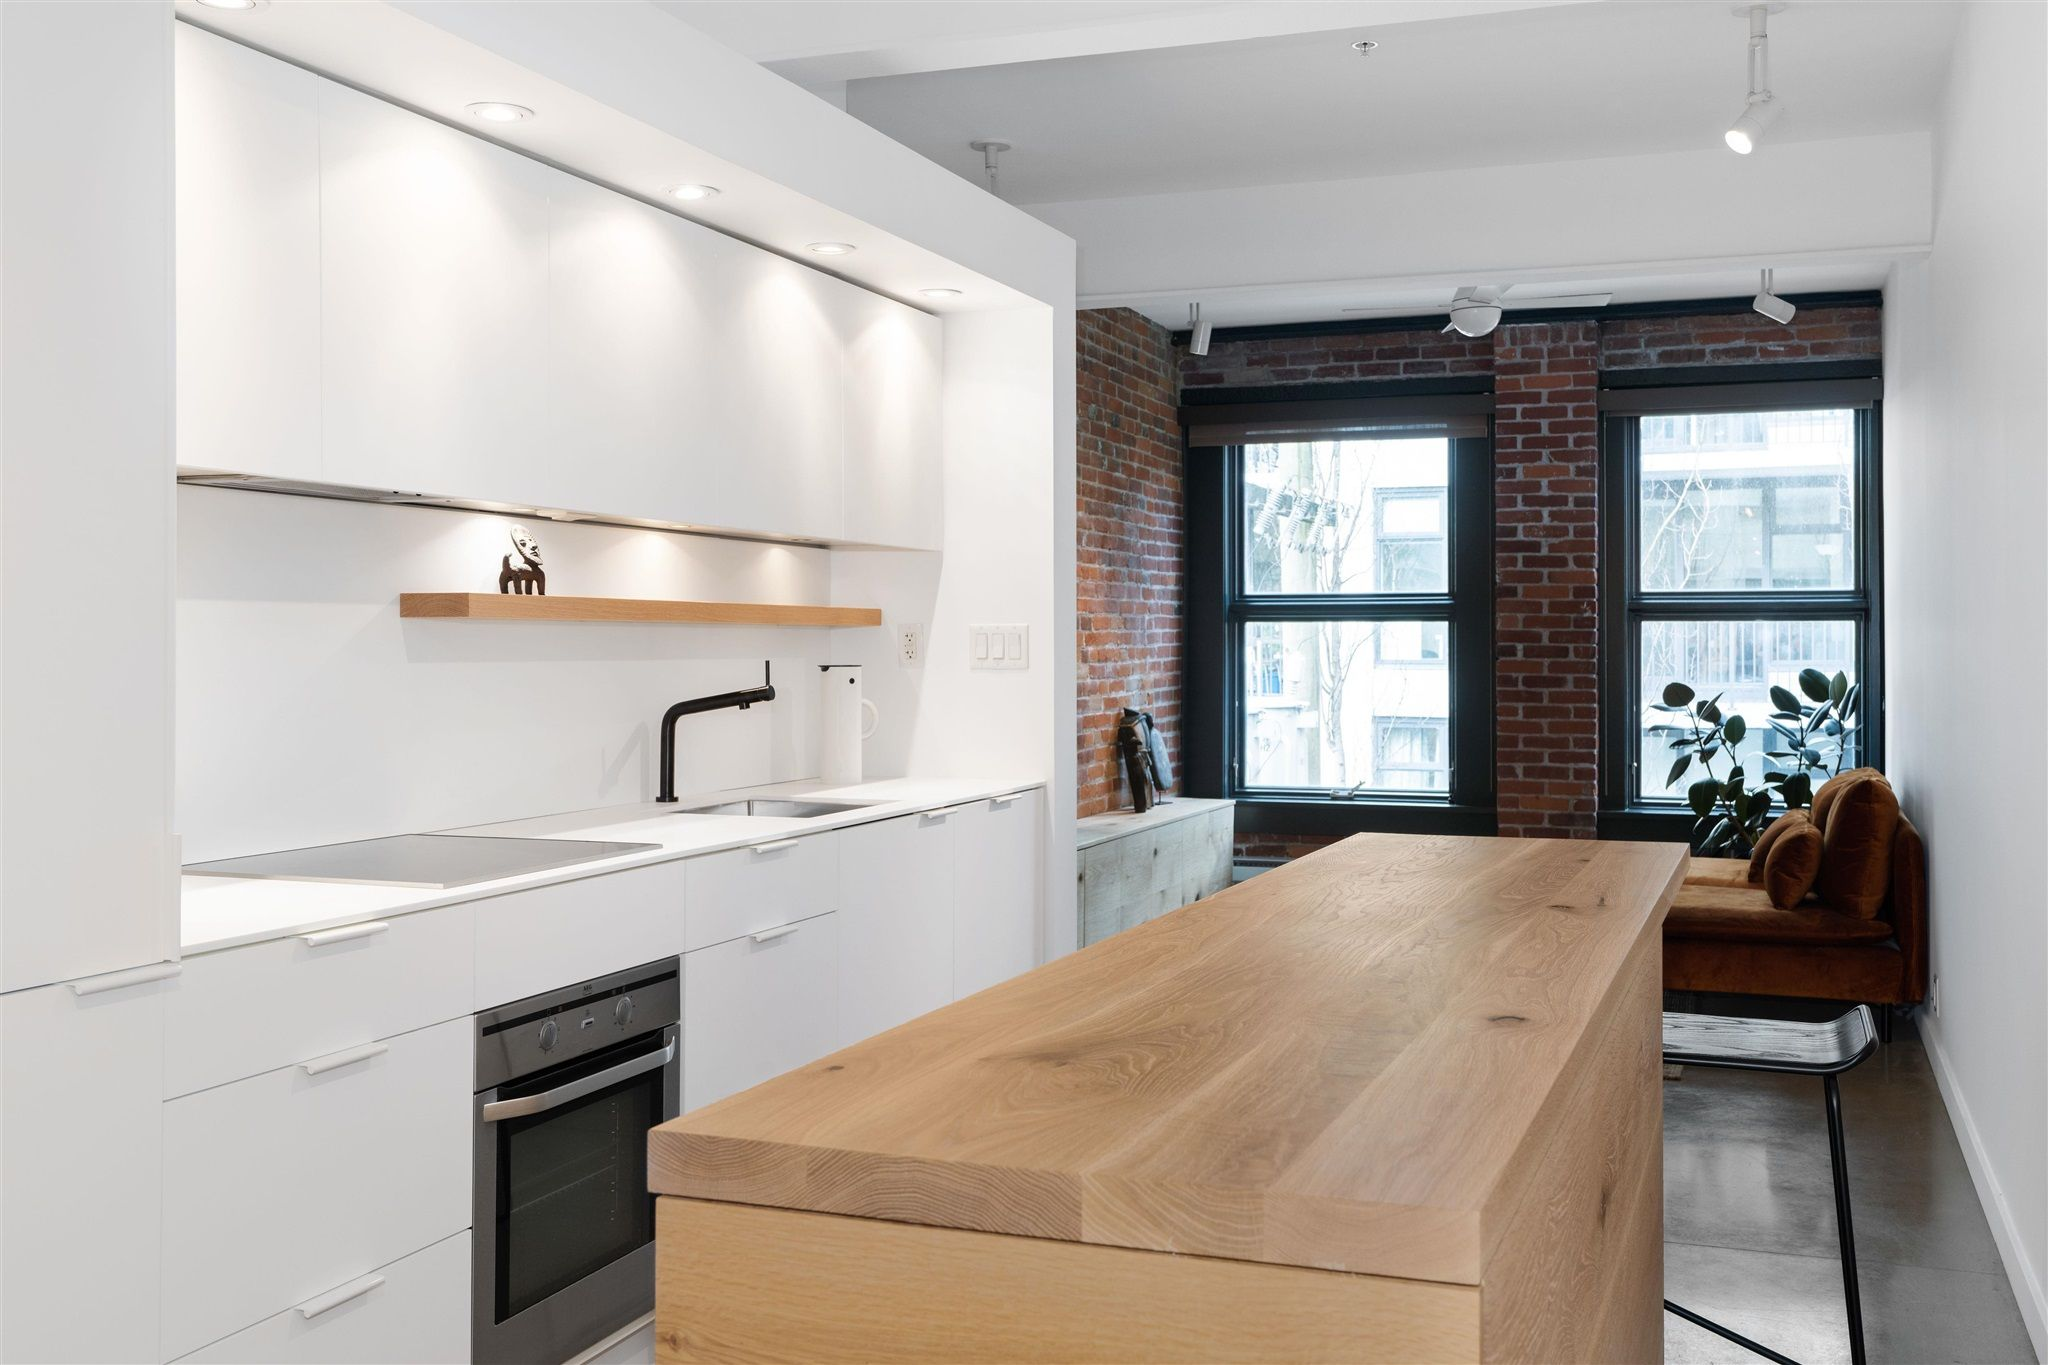 """Main Photo: 404 53 W HASTINGS Street in Vancouver: Downtown VW Condo for sale in """"Paris Block"""" (Vancouver West)  : MLS®# R2608544"""